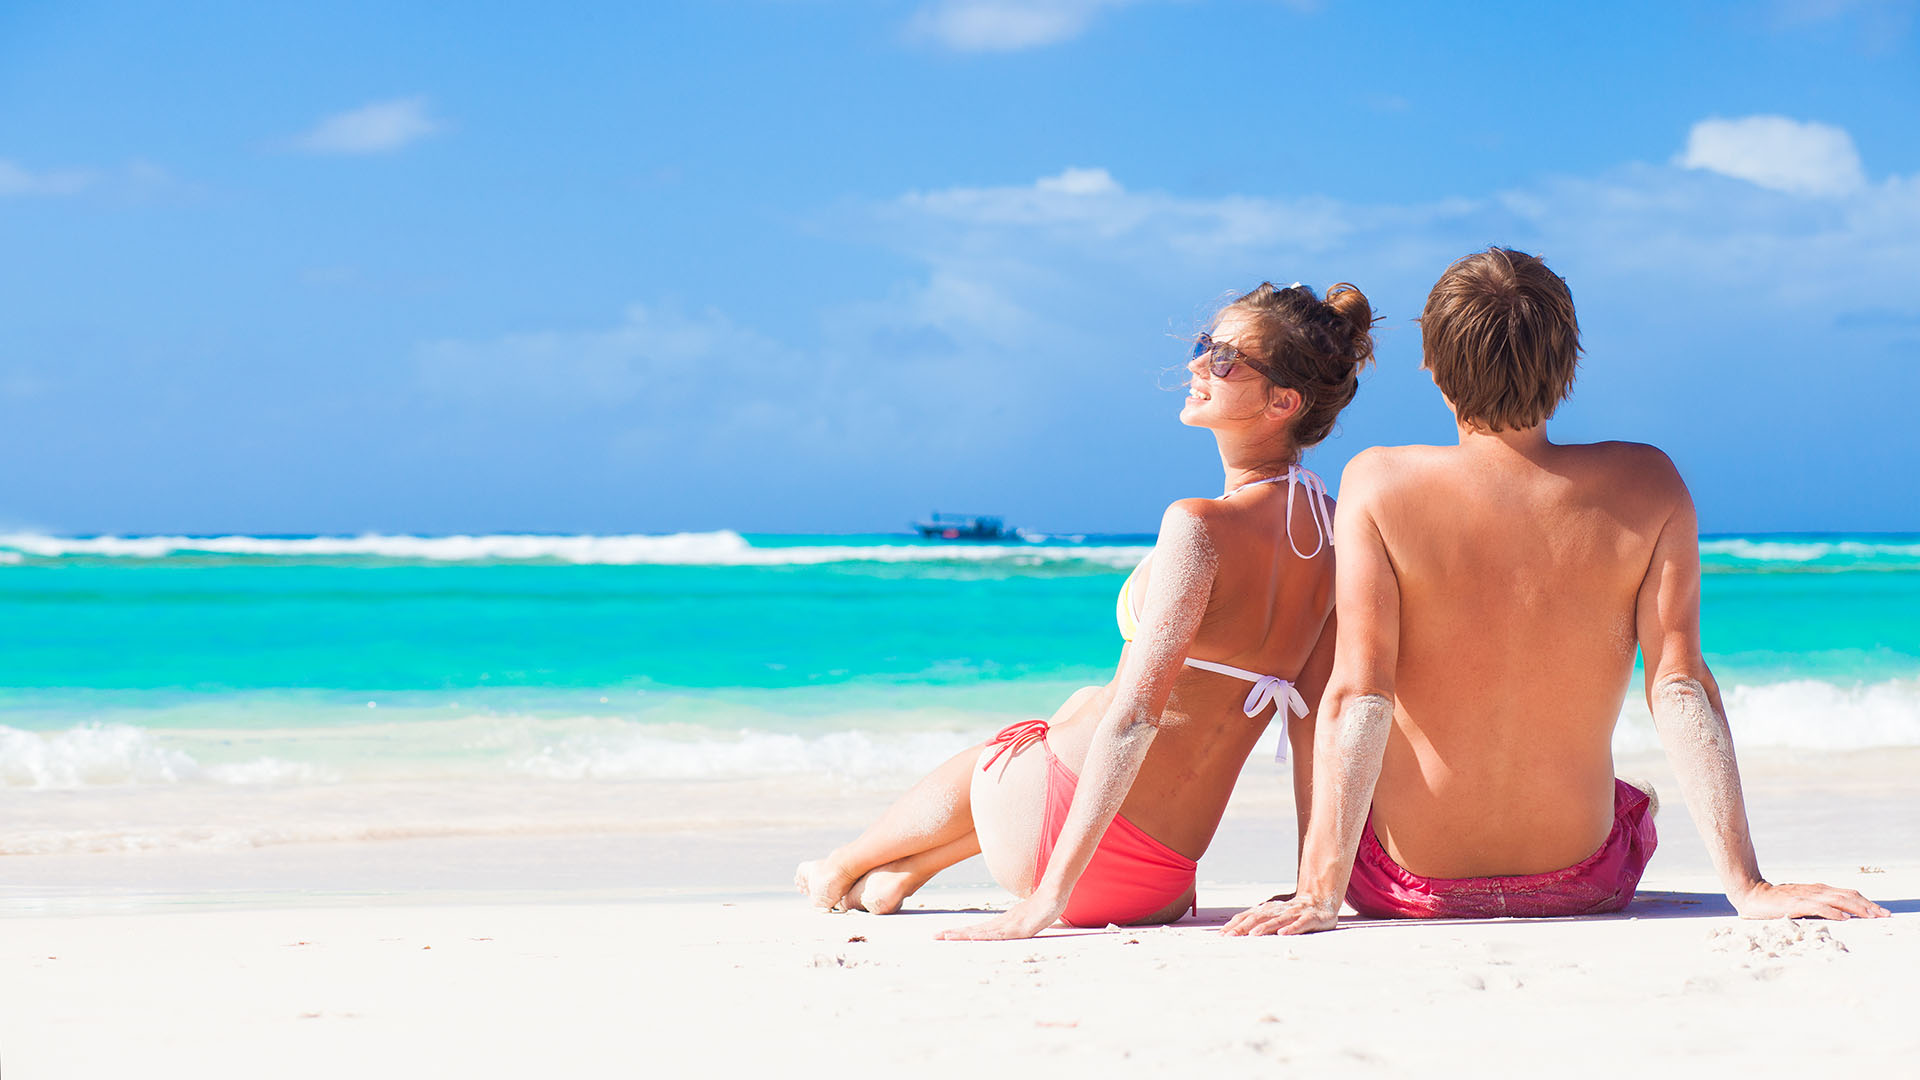 luxury hotels in barbados the lone star hotel Beach Holidays in Barbdos 2